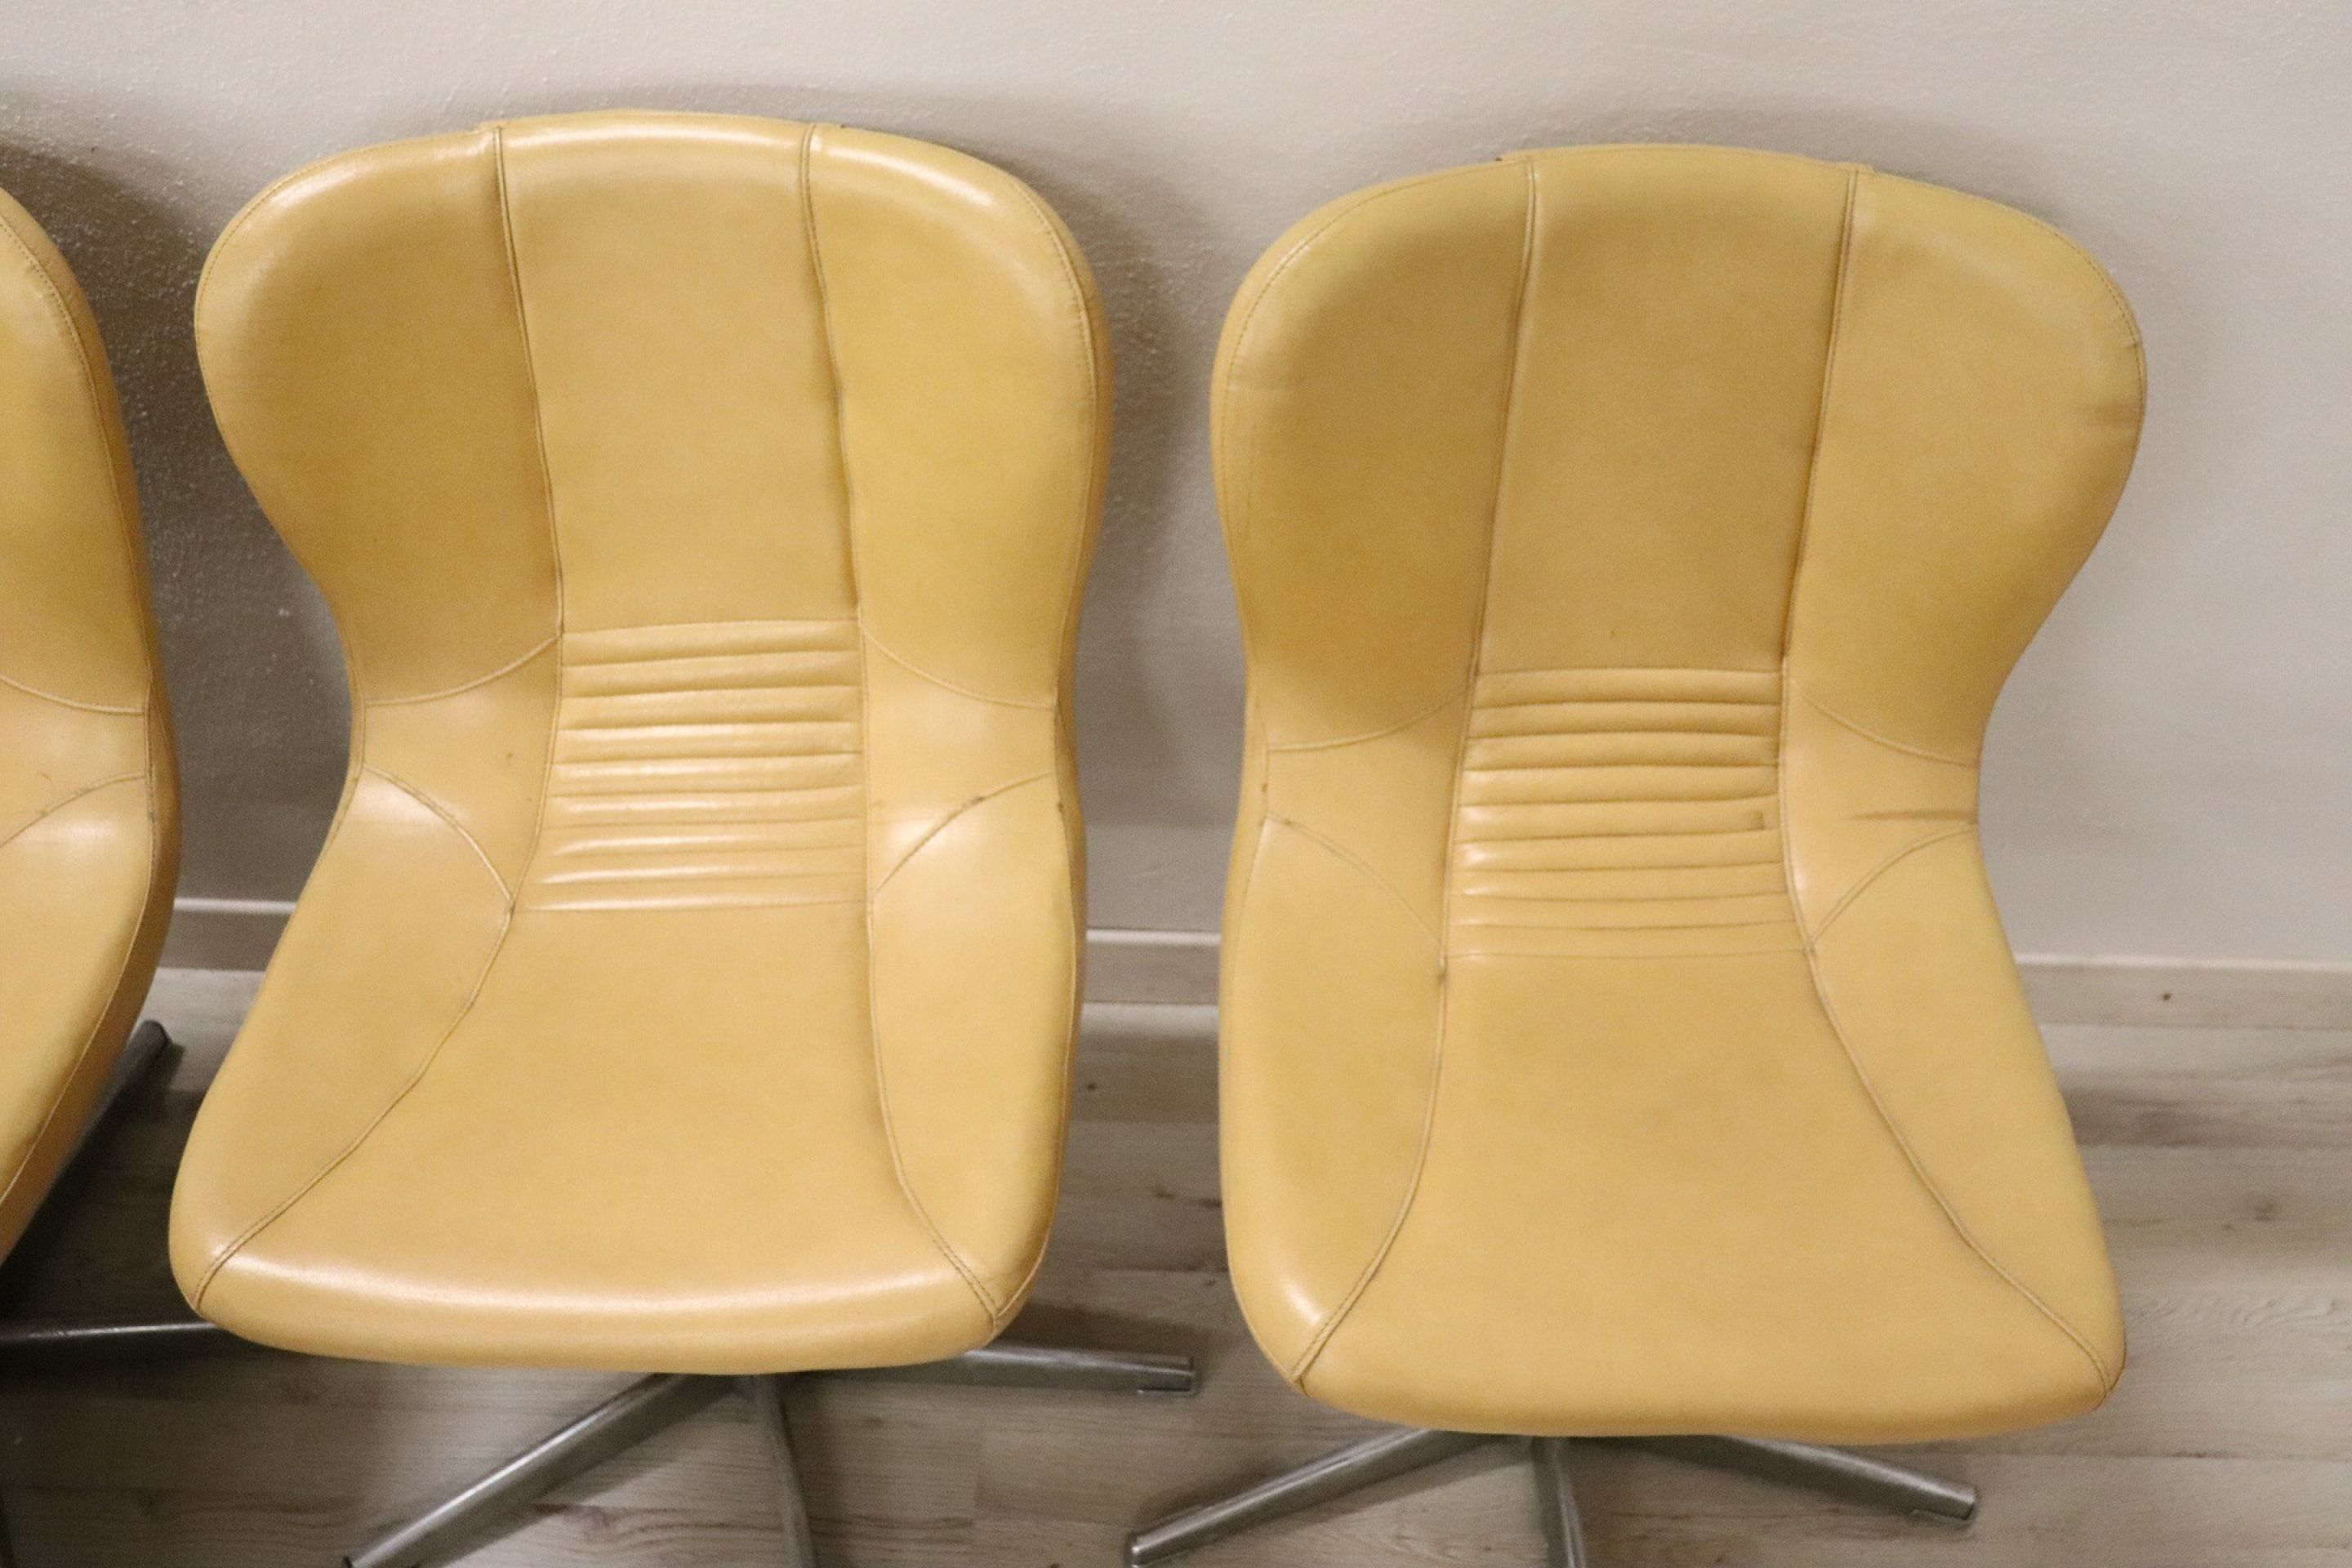 20th Century Italian Design Chromed Metal and Leather Set of 10 Armchairs, 1960s